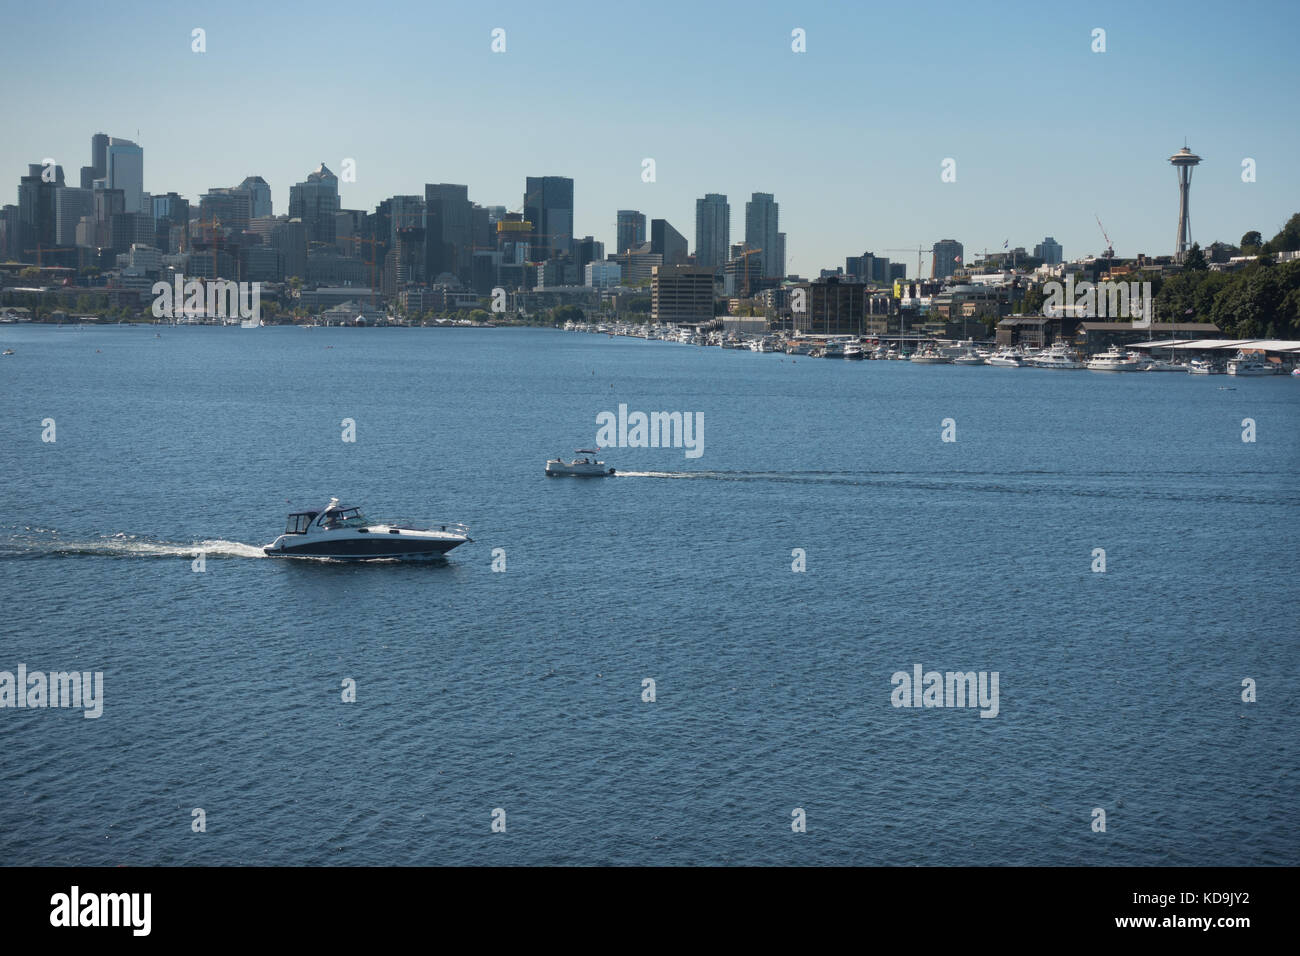 Pleasure boat on Lake Union, Seattle. Seattle skyline backdrop to scenic Lake Union viewed from Gas Works Park; - Stock Image